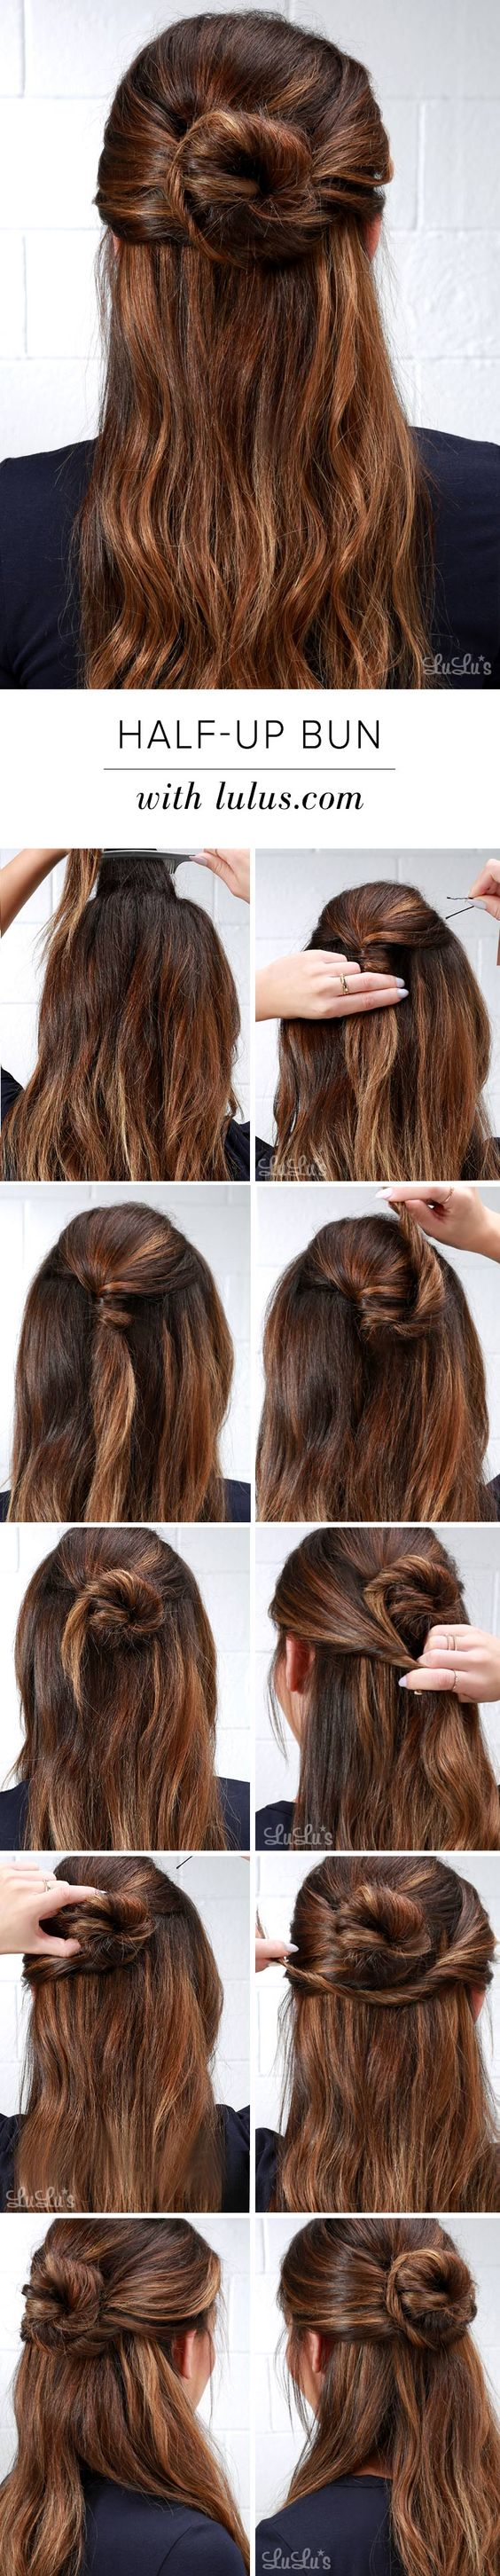 LuLu*s How-To: Half-Up Bun Hair Tutorial at LuLus.com!: